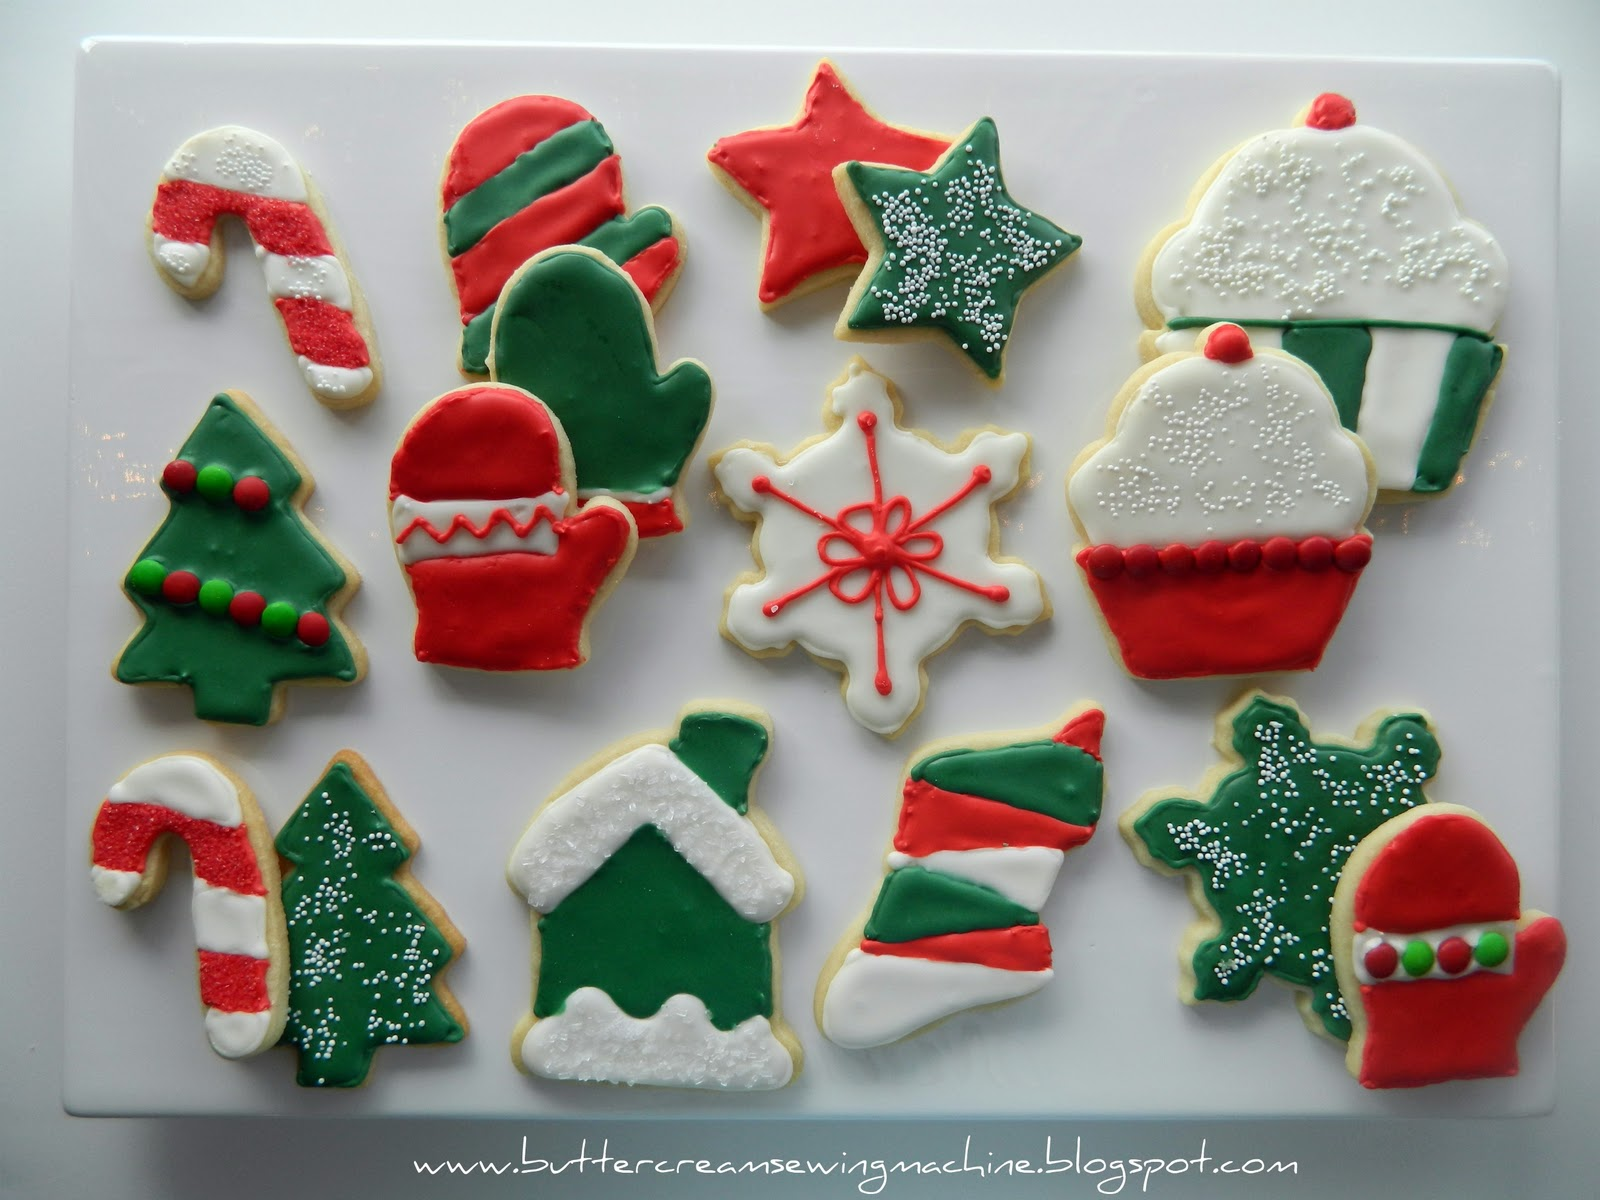 ChristmasCookies2. wm_christmas_cookiedecorating3 : cookie decorating ideas christmas - www.pureclipart.com